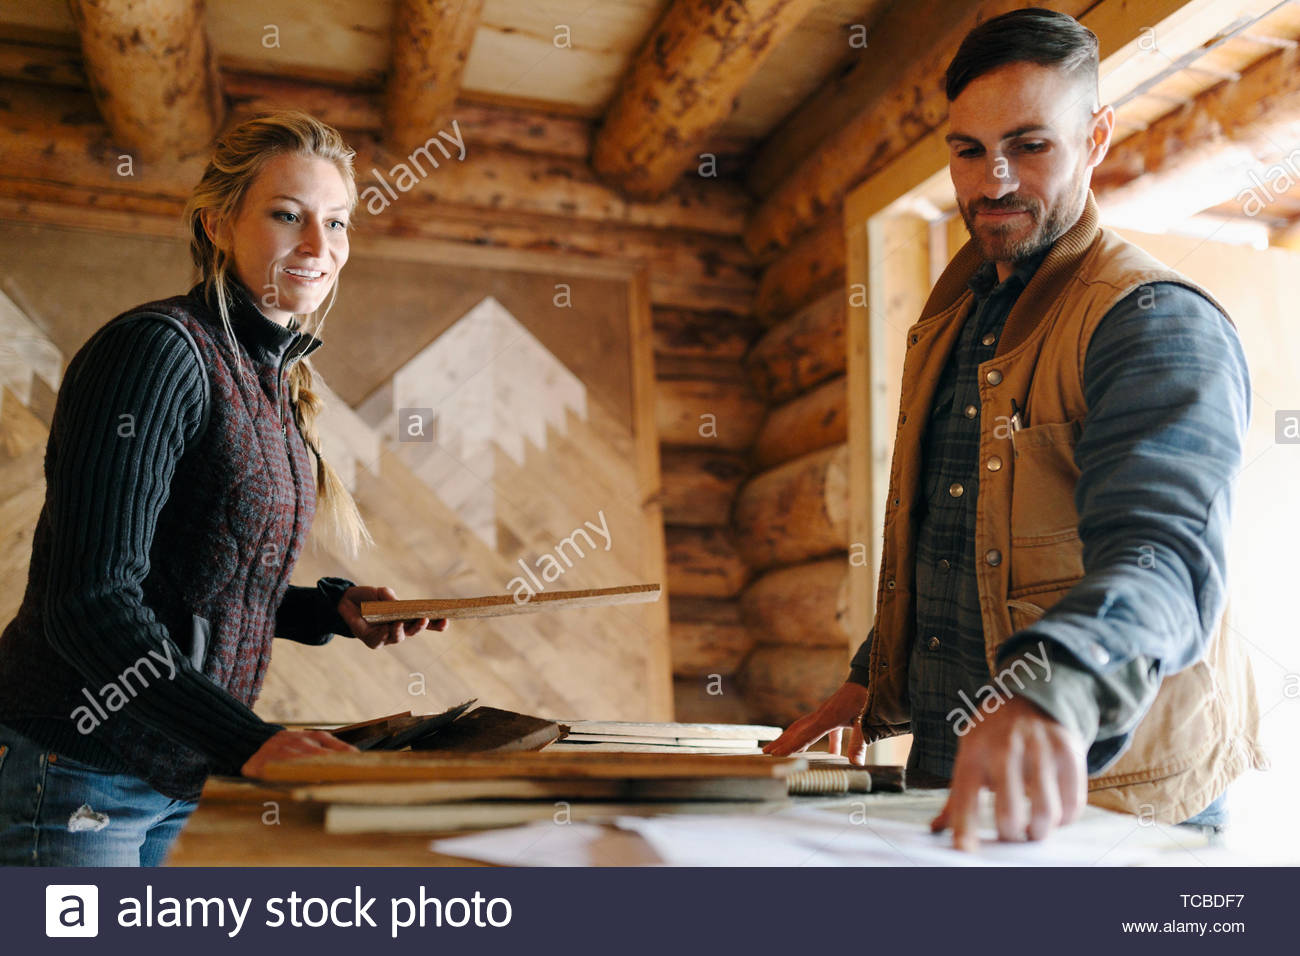 Couple woodworking in workshop - Stock Image